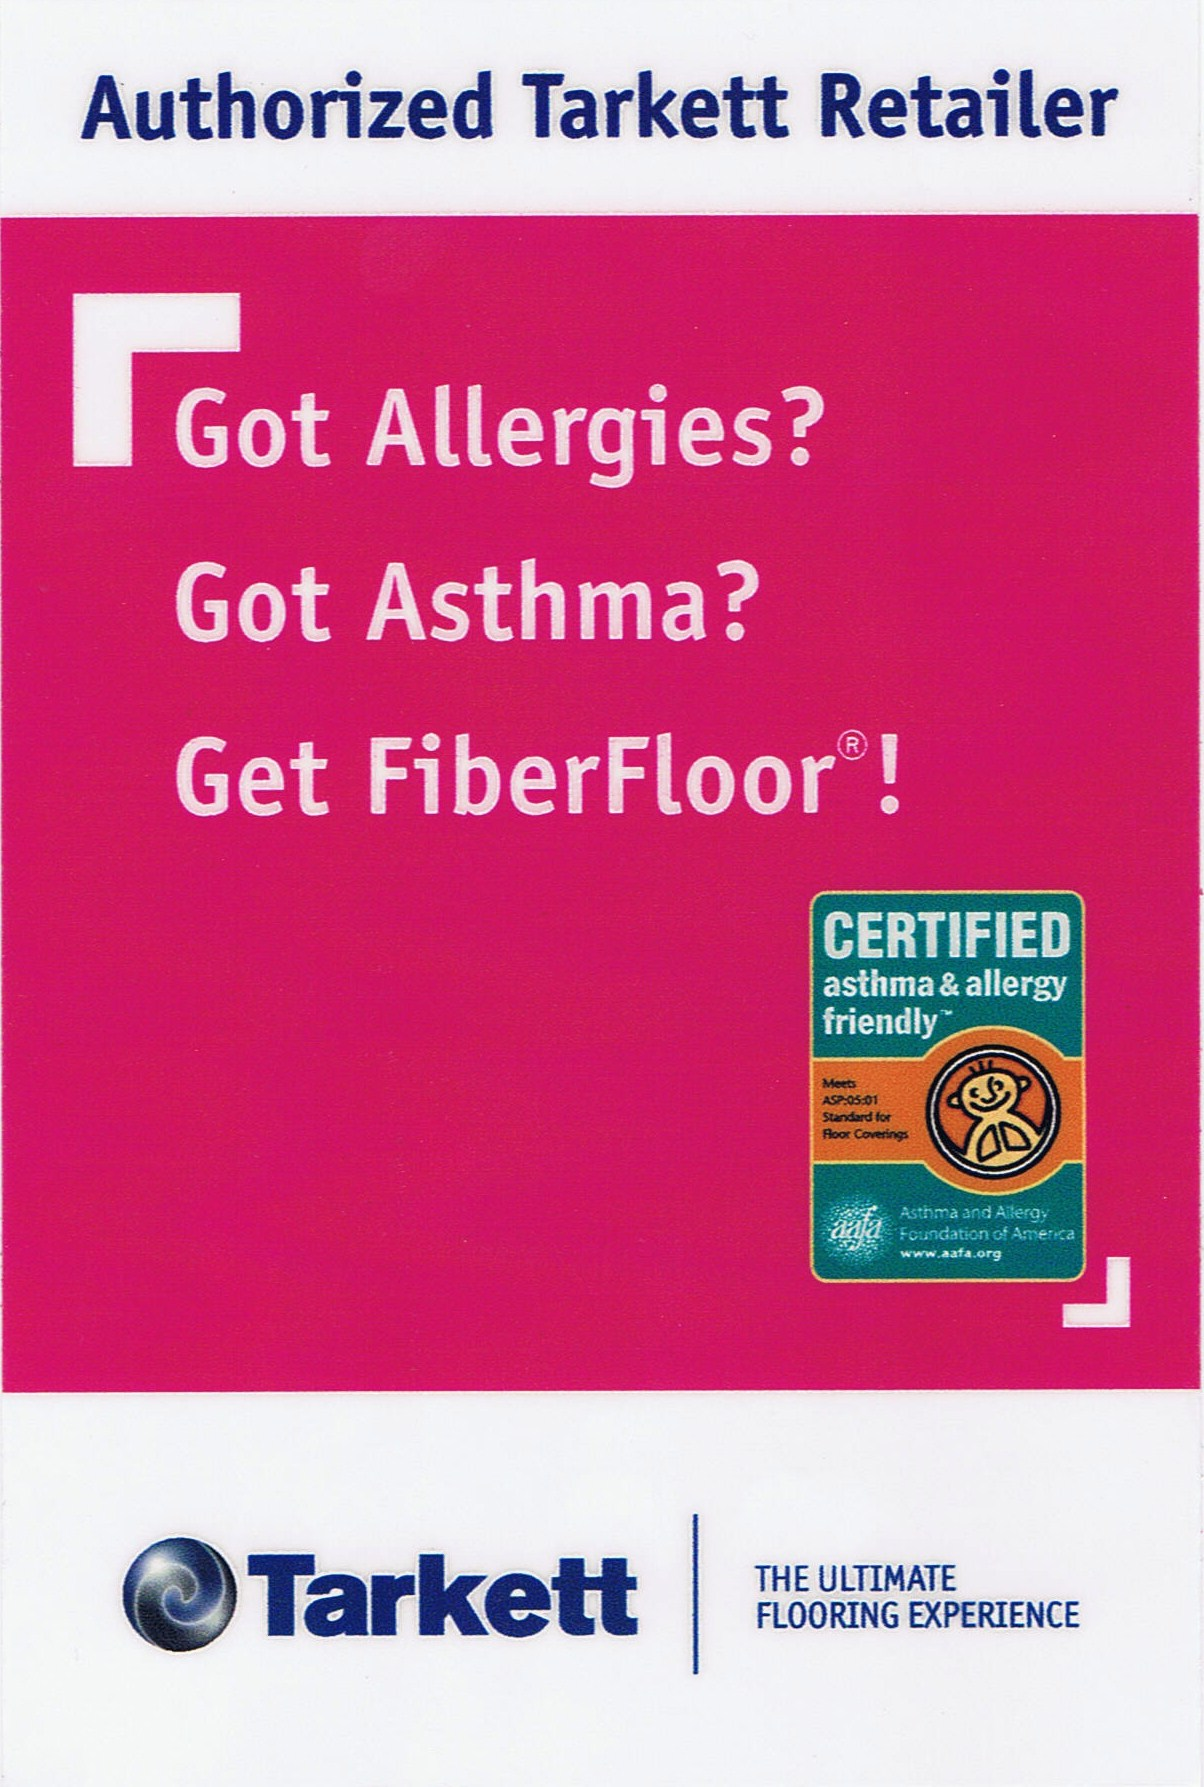 Now offering Certified asthma & allergy friendly flooring!